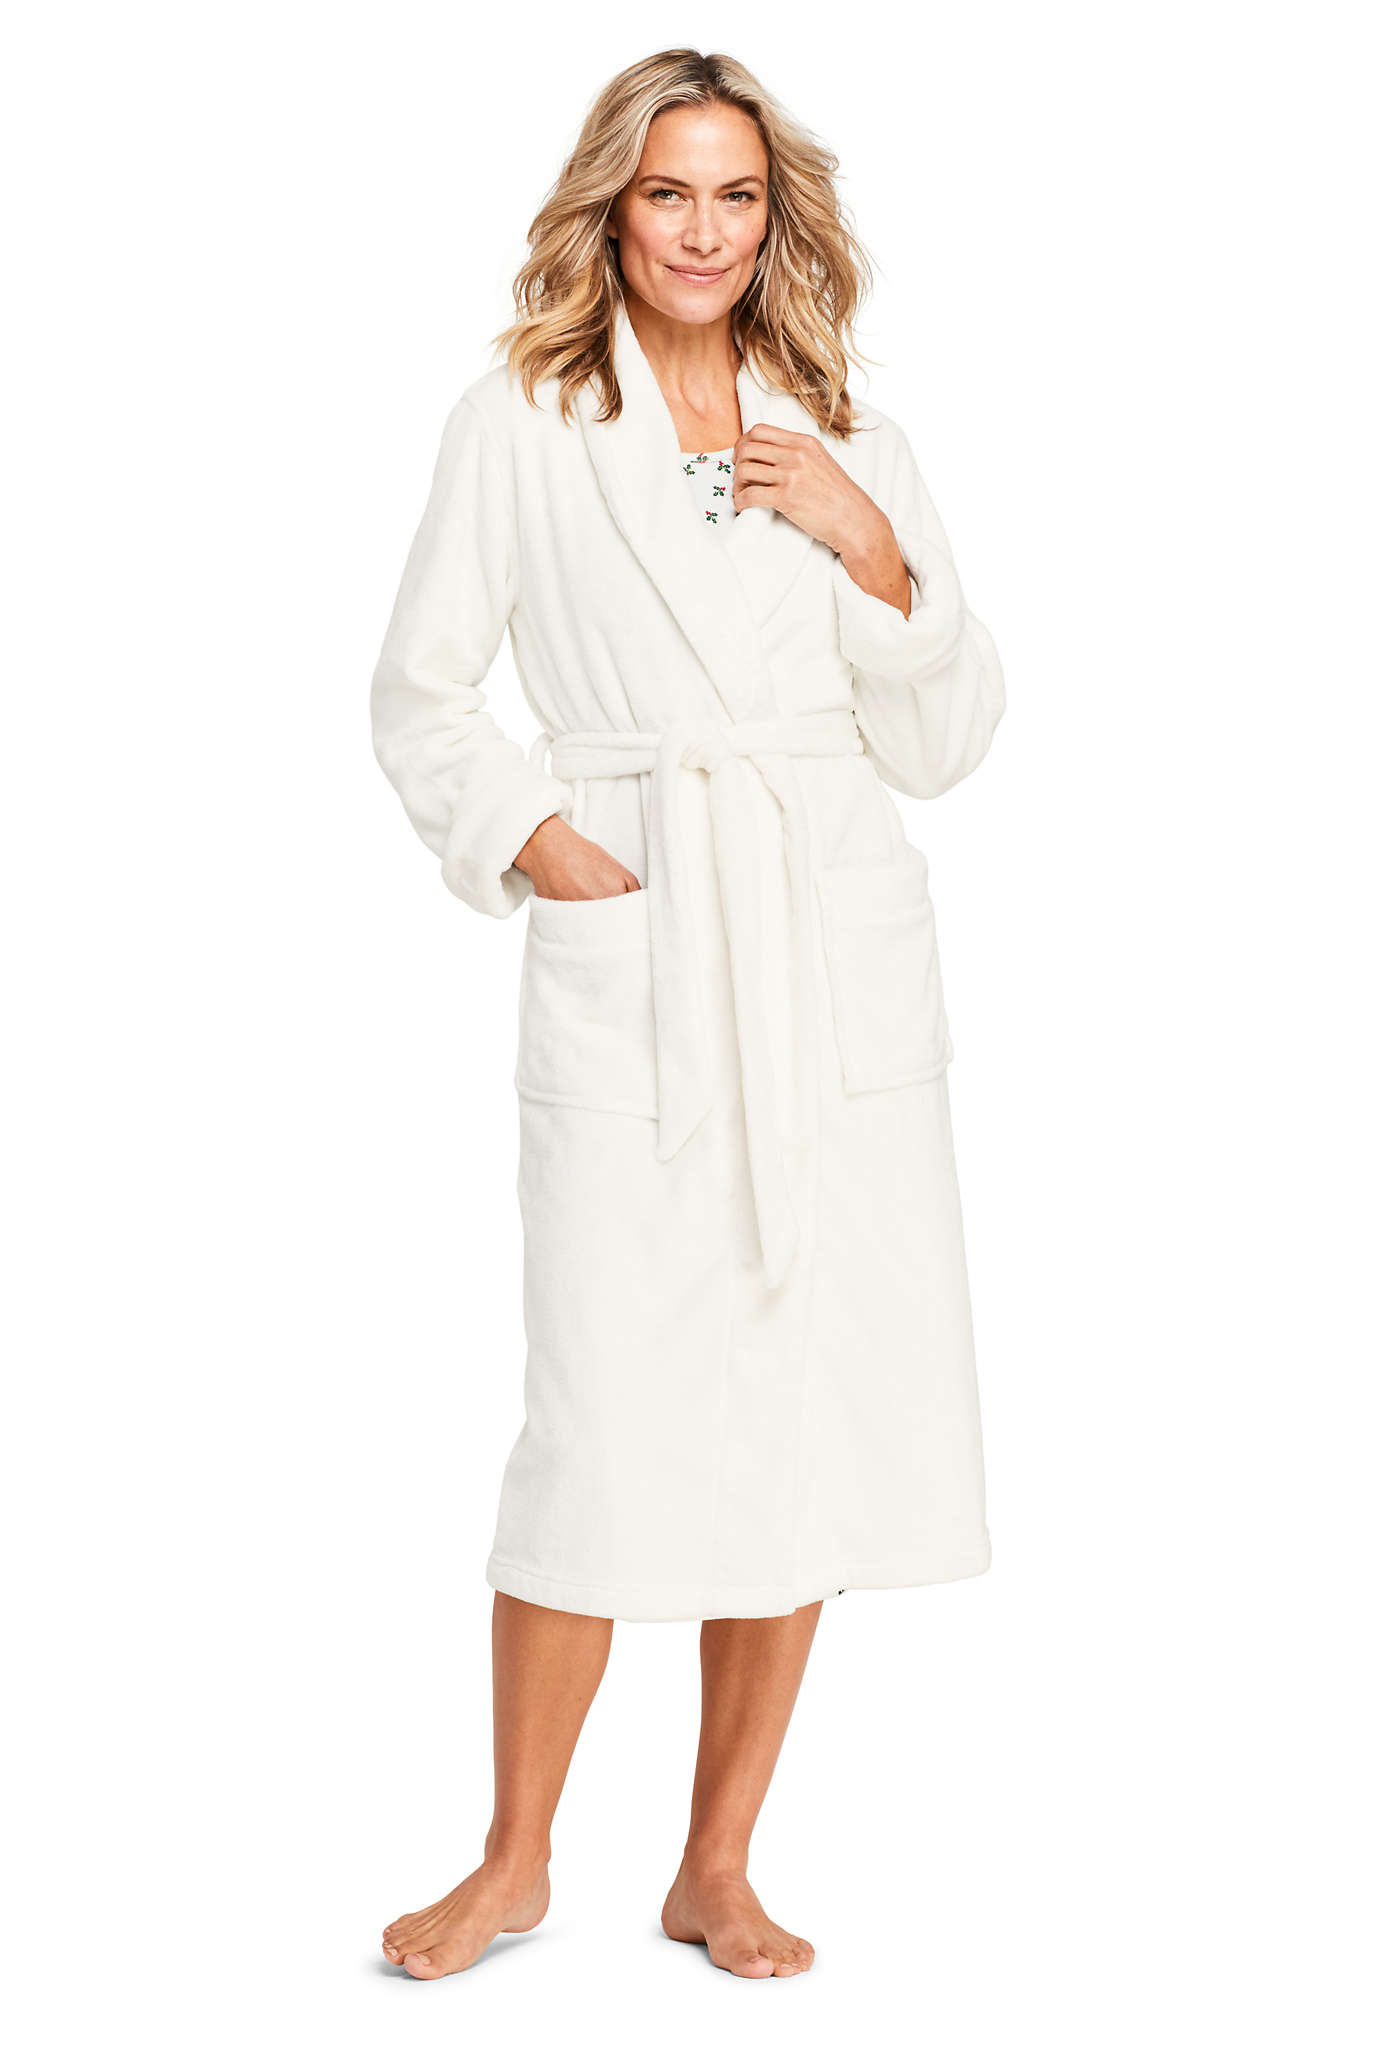 a0744393146cb Women's Robes | Bathrobes for Women | Lands' End